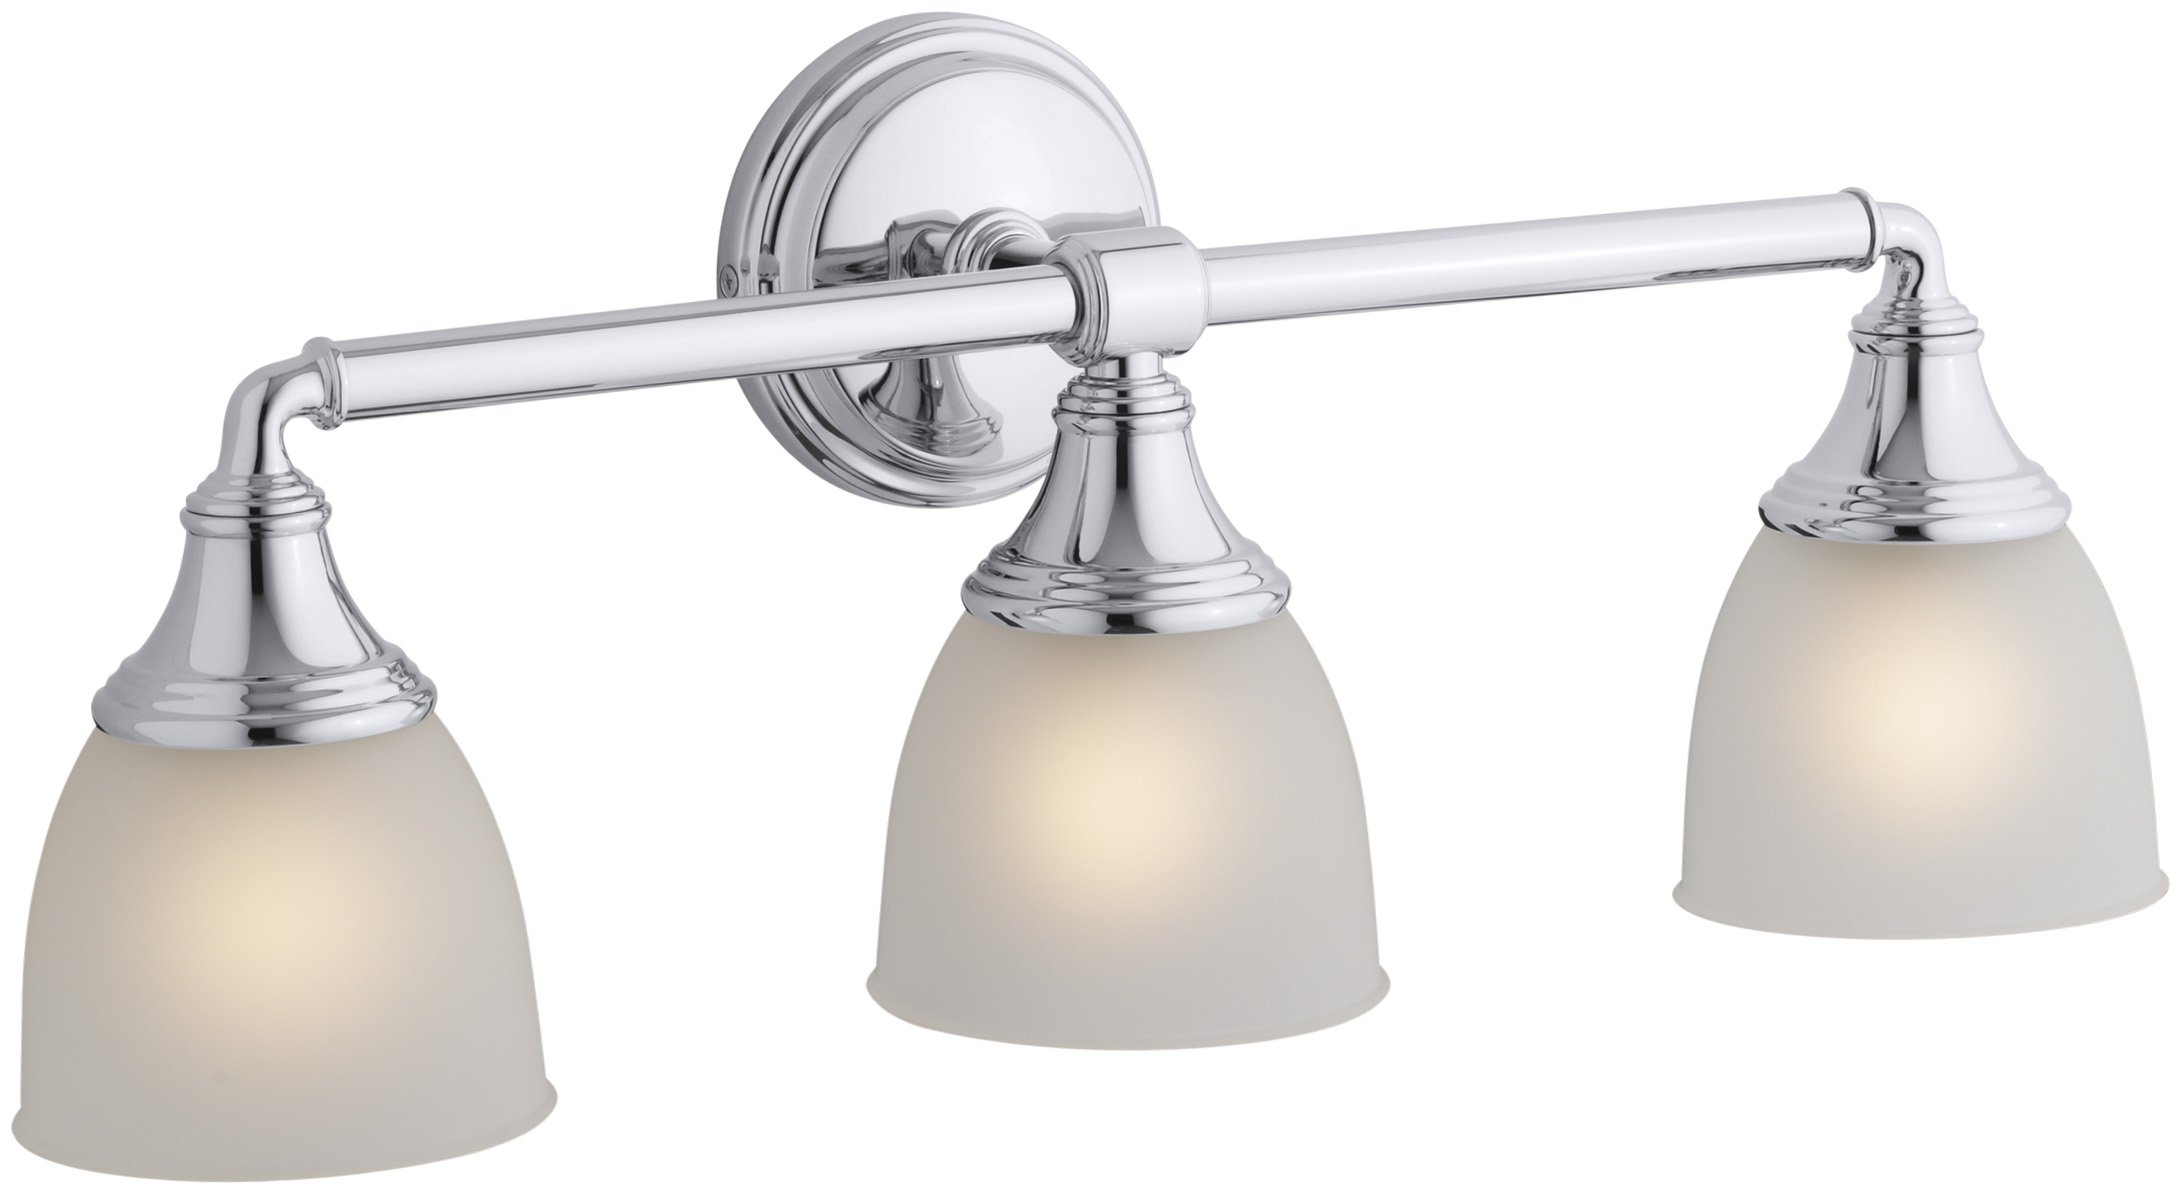 KOHLER K-10572-CP Devonshire Triple Sconce, Polished Chrome